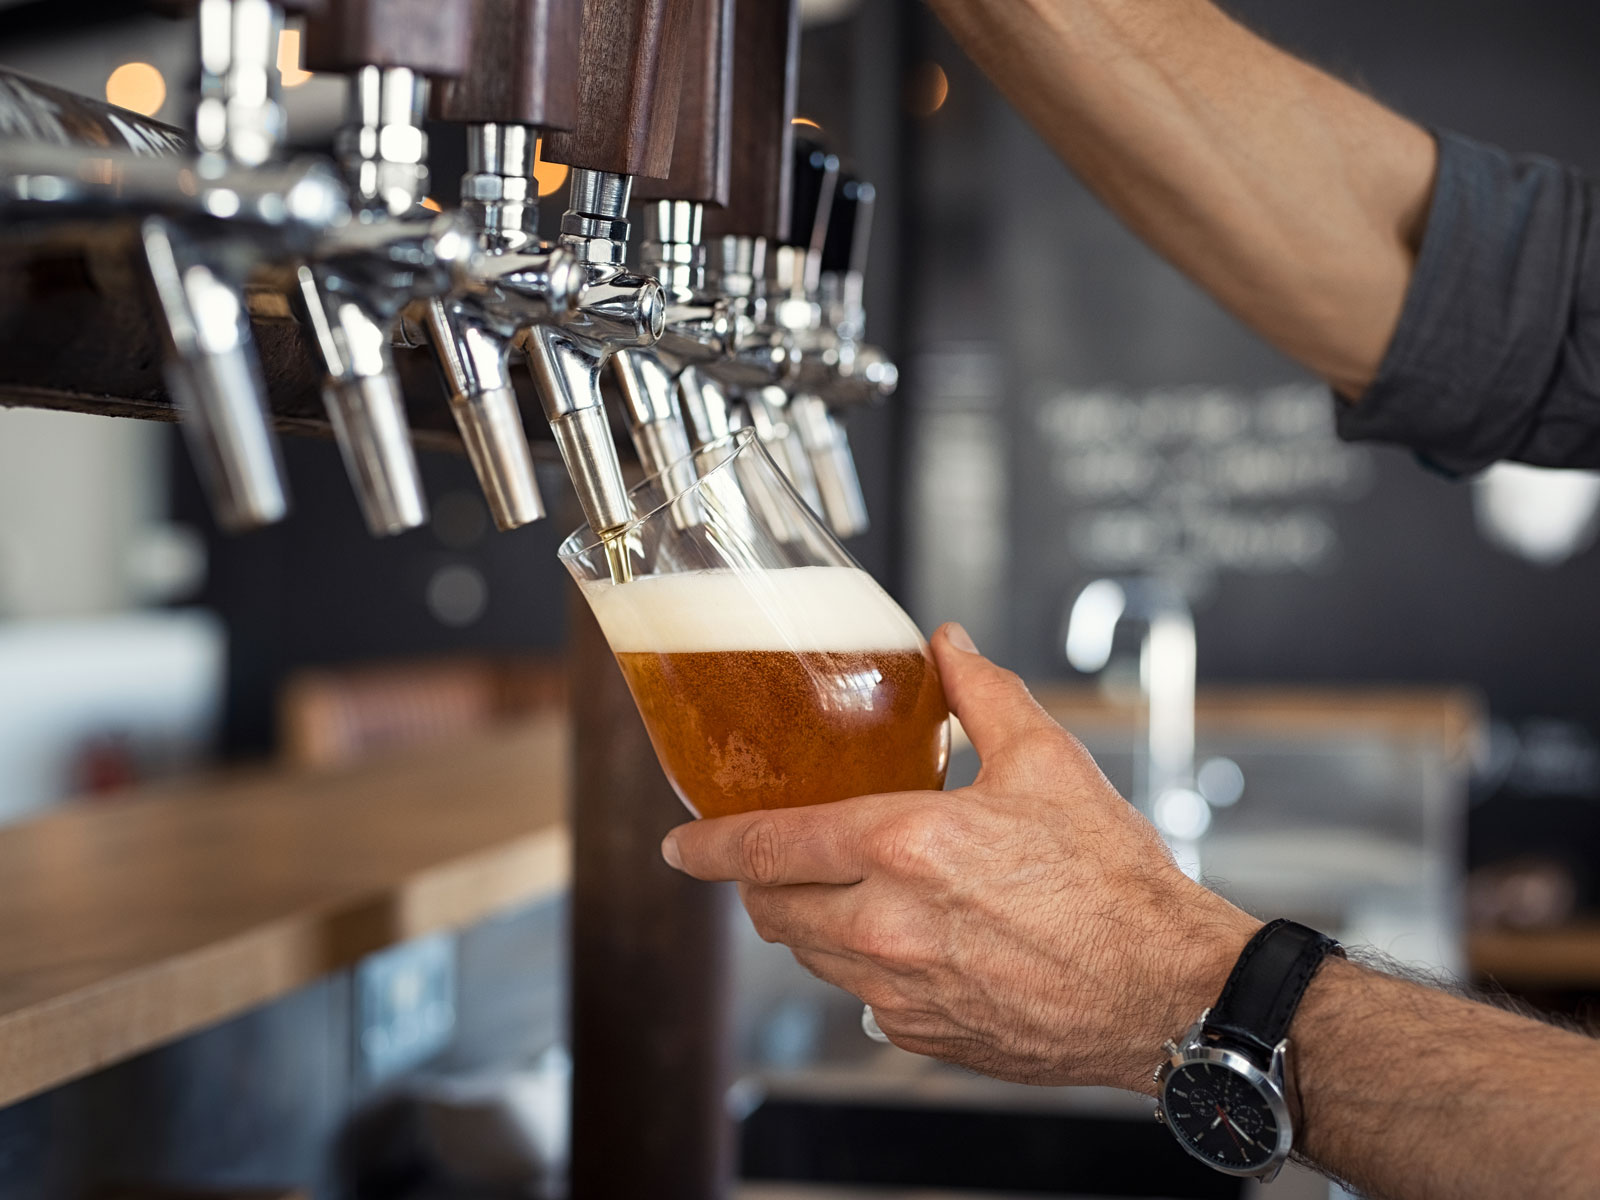 British Beer Really Is Too Warm, Report Finds